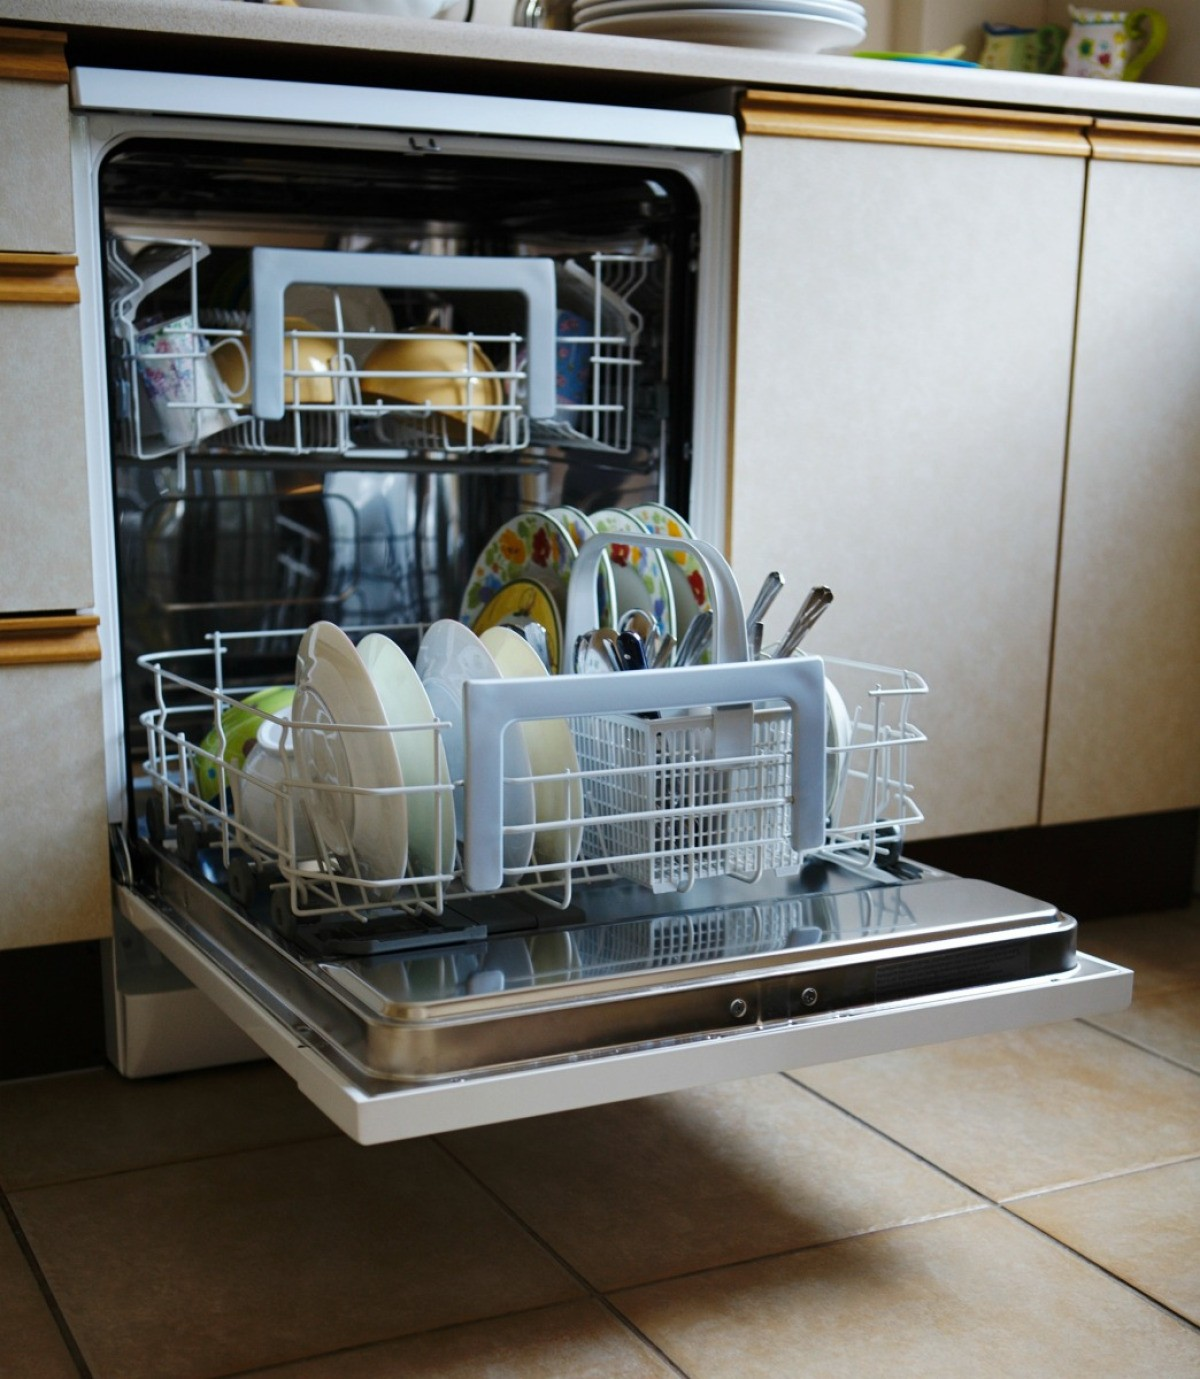 Best Dishwashers For Well Water 2020